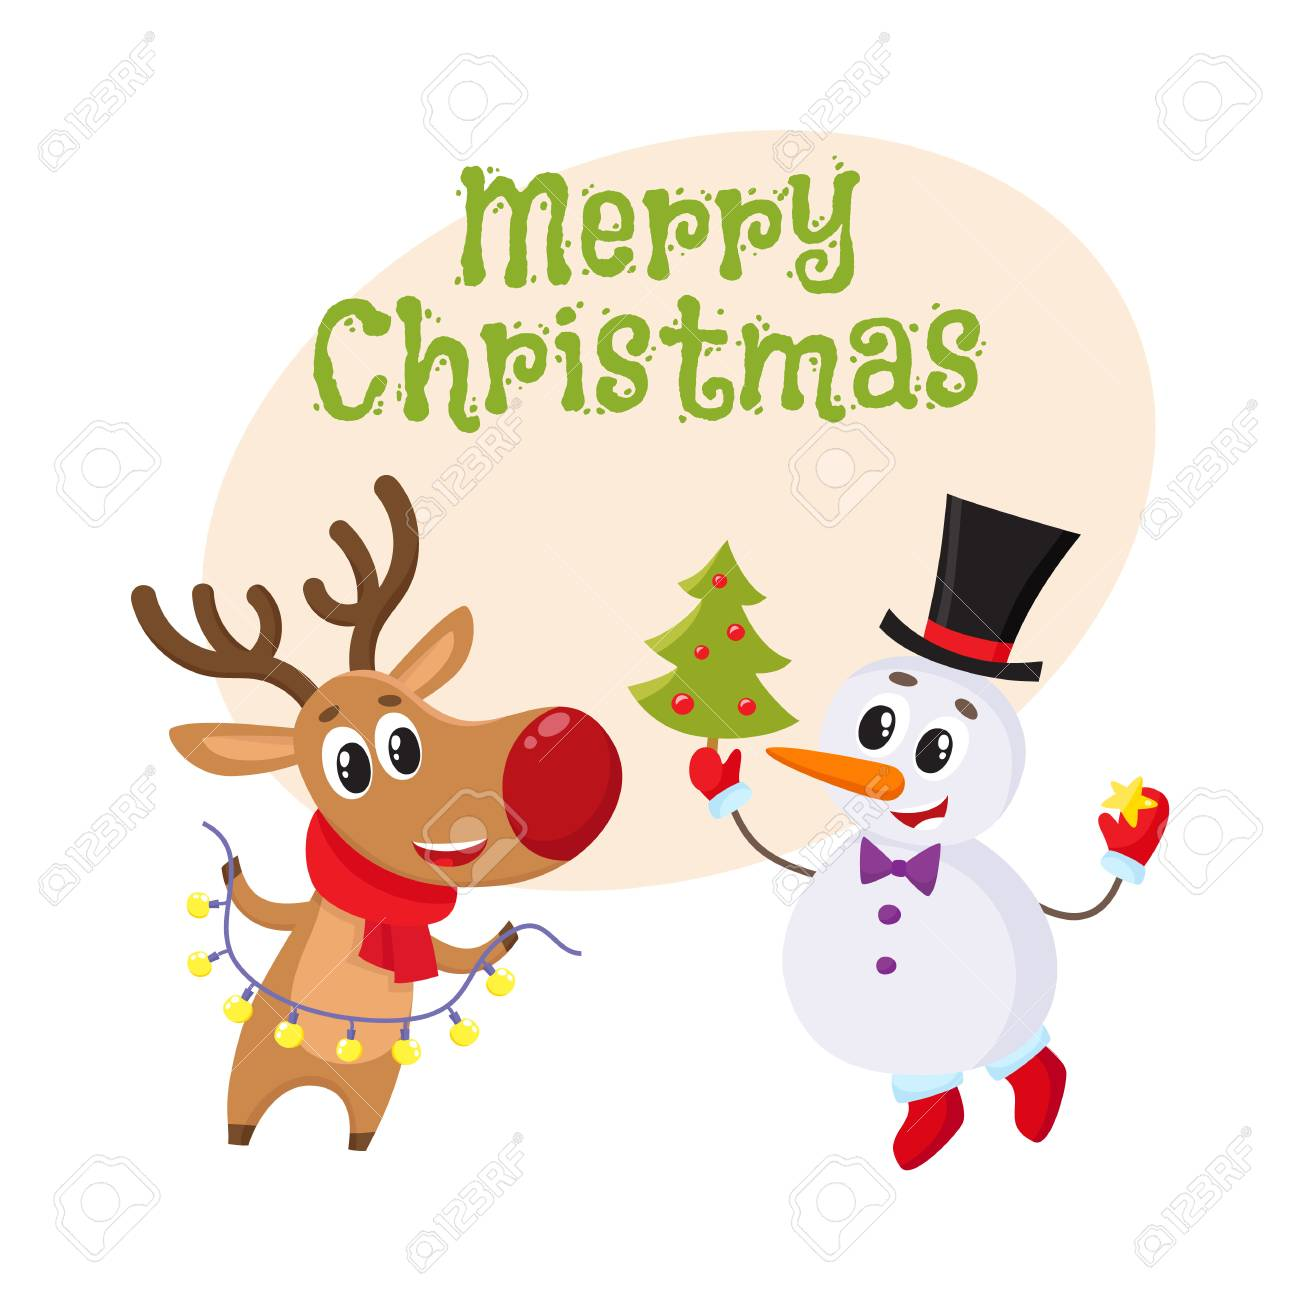 Merry Christmas Greeting Card Template With Happy Snowman Holding